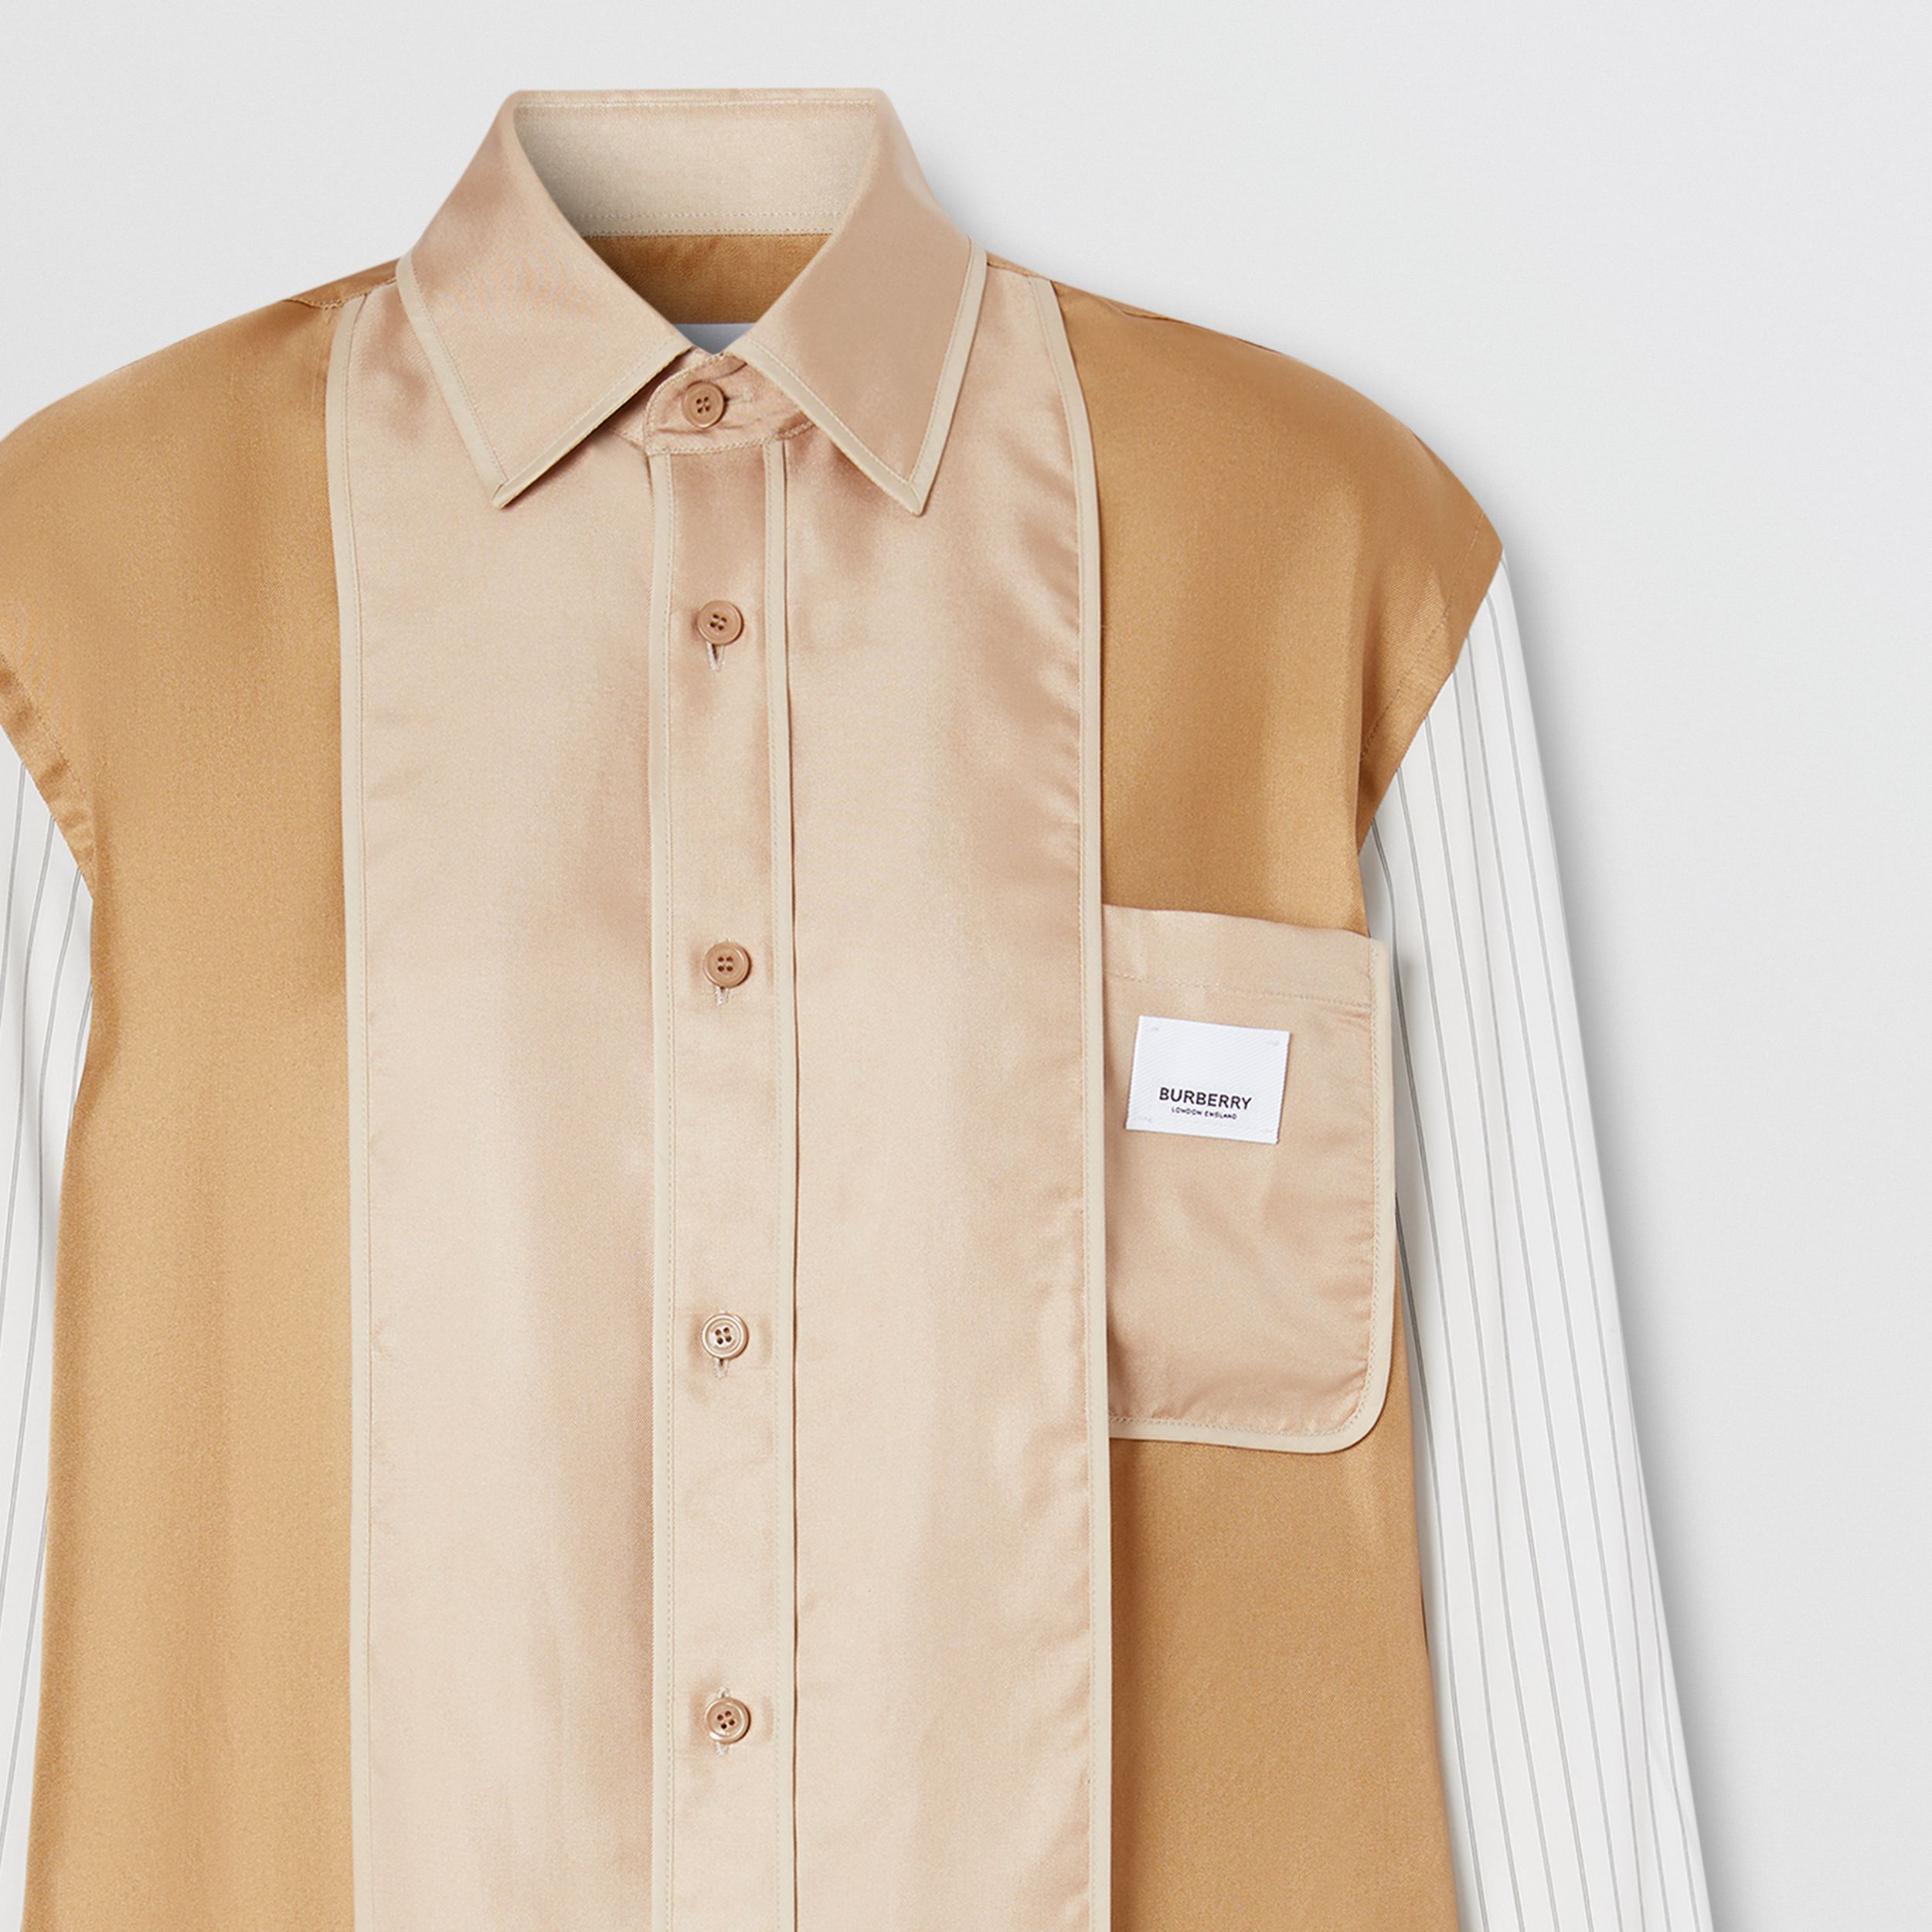 Logo Appliqué Pinstriped Sleeve Silk Shirt in Camel - Women | Burberry - 3